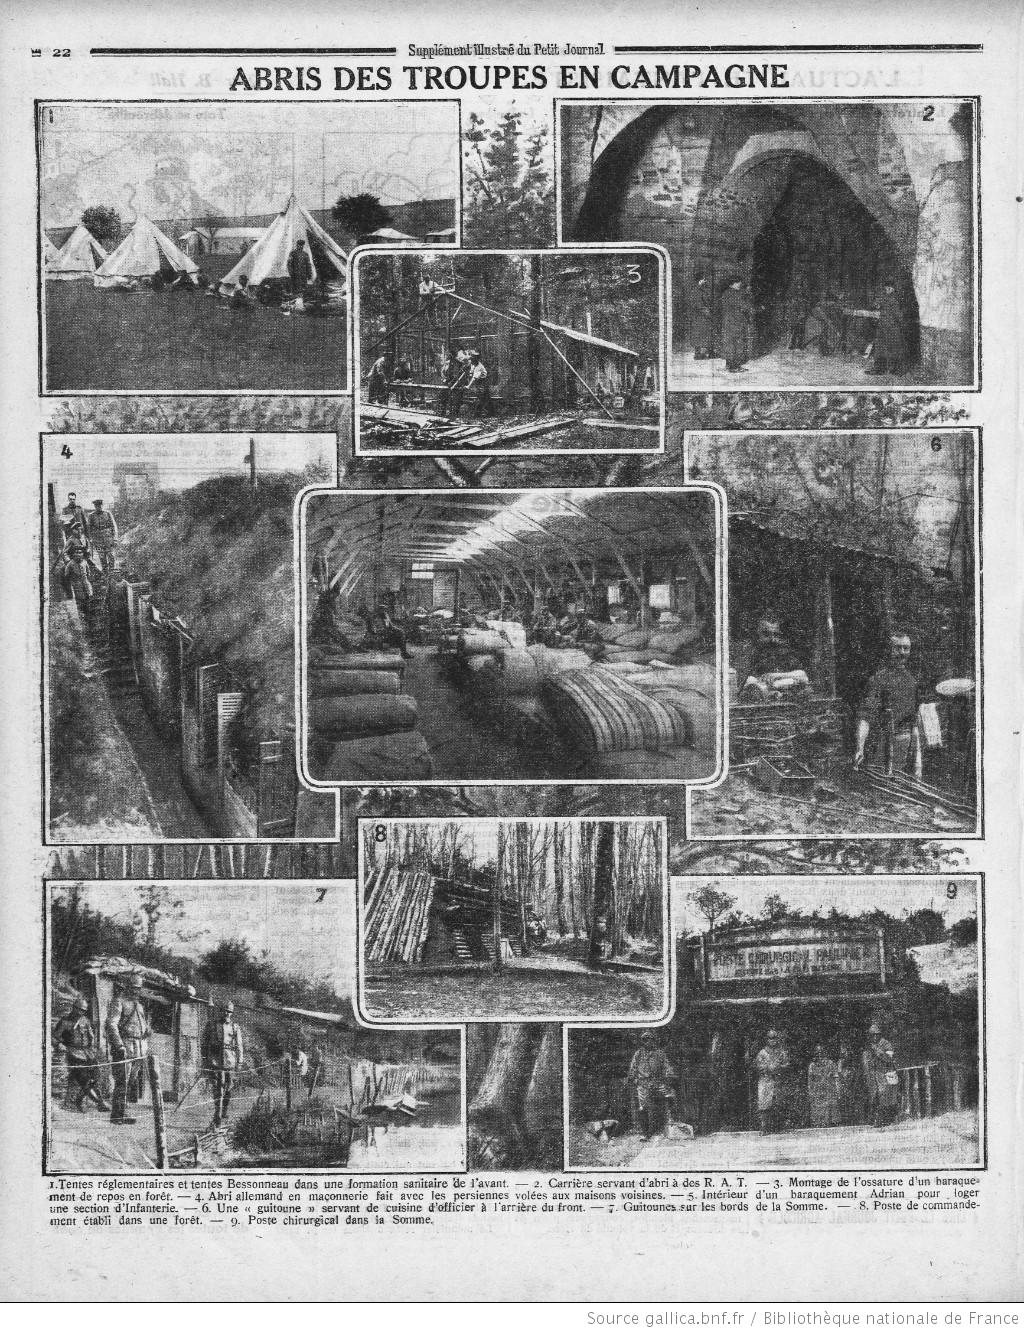 LPJ Illustre 1918-07-21 C.jpg